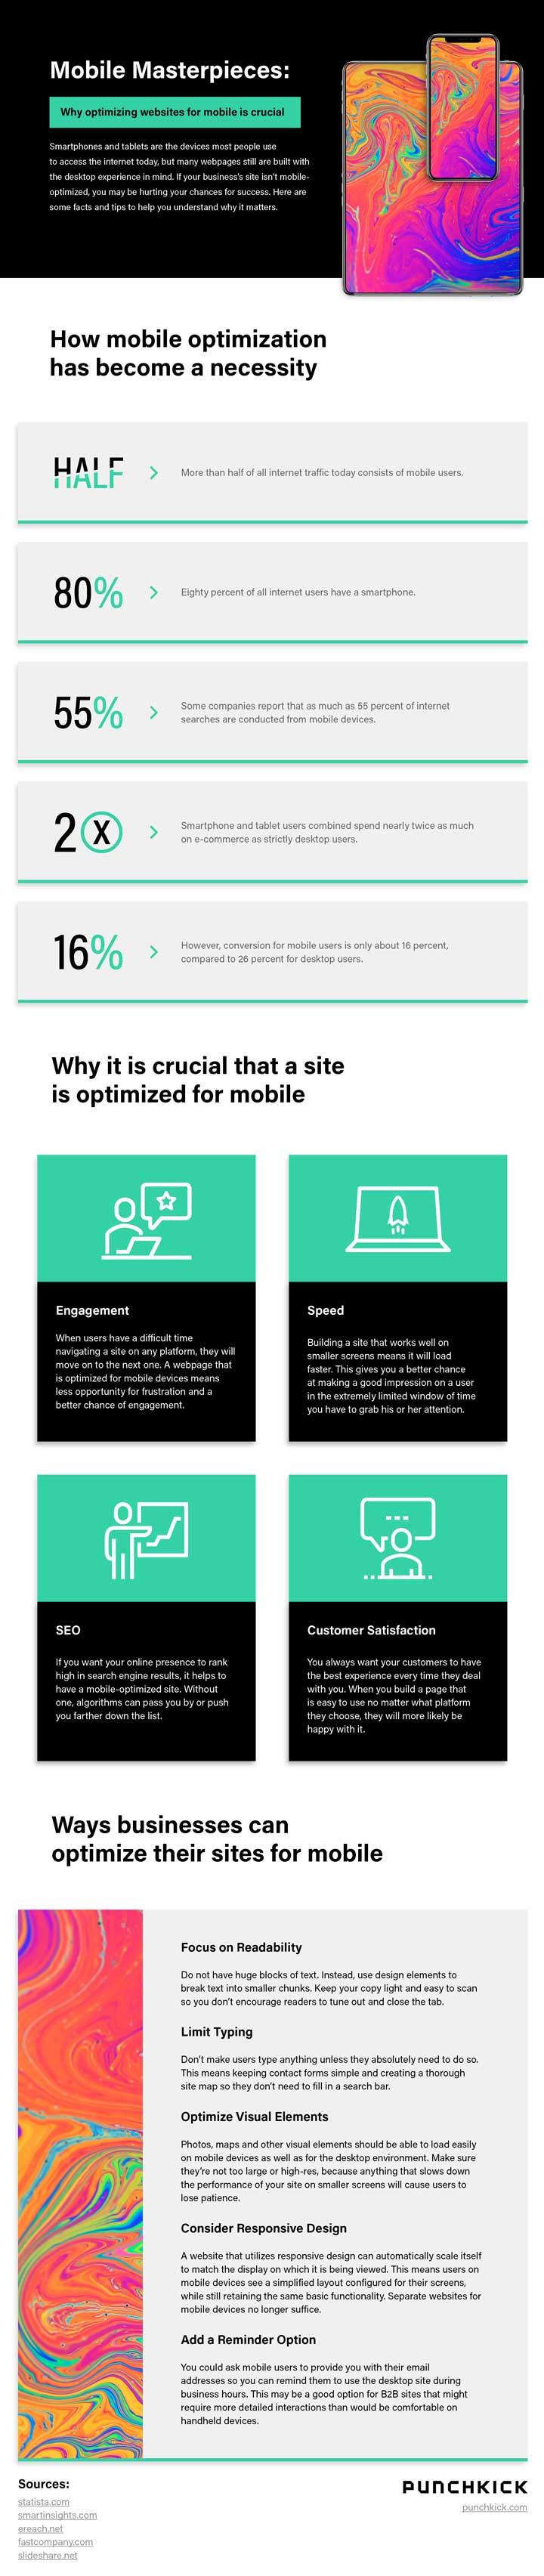 Importance of Optimizing Websites for Mobile